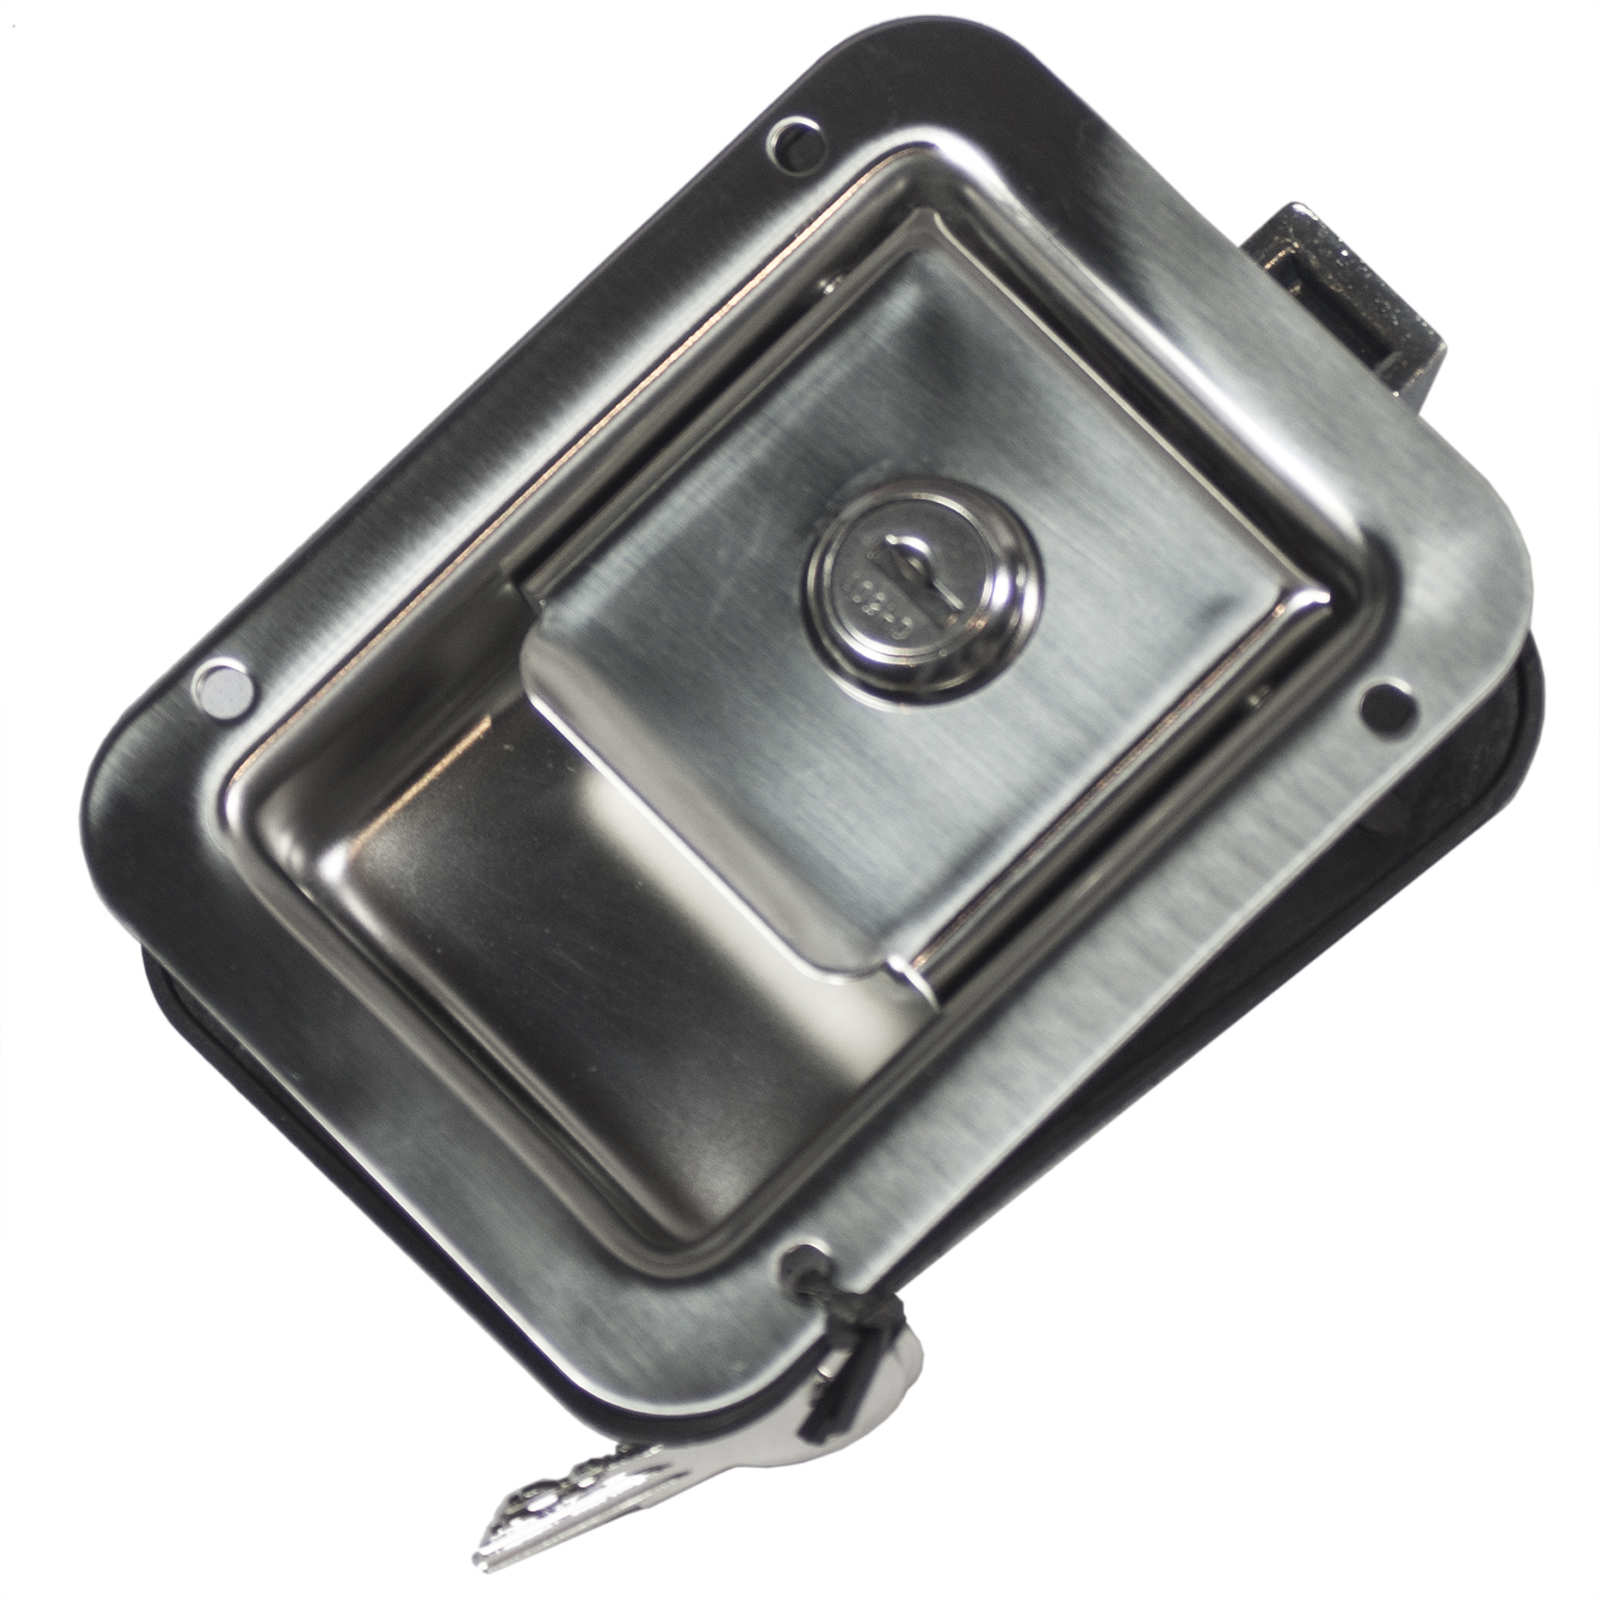 Large Polished Stainless Steel Paddle Locking Latch